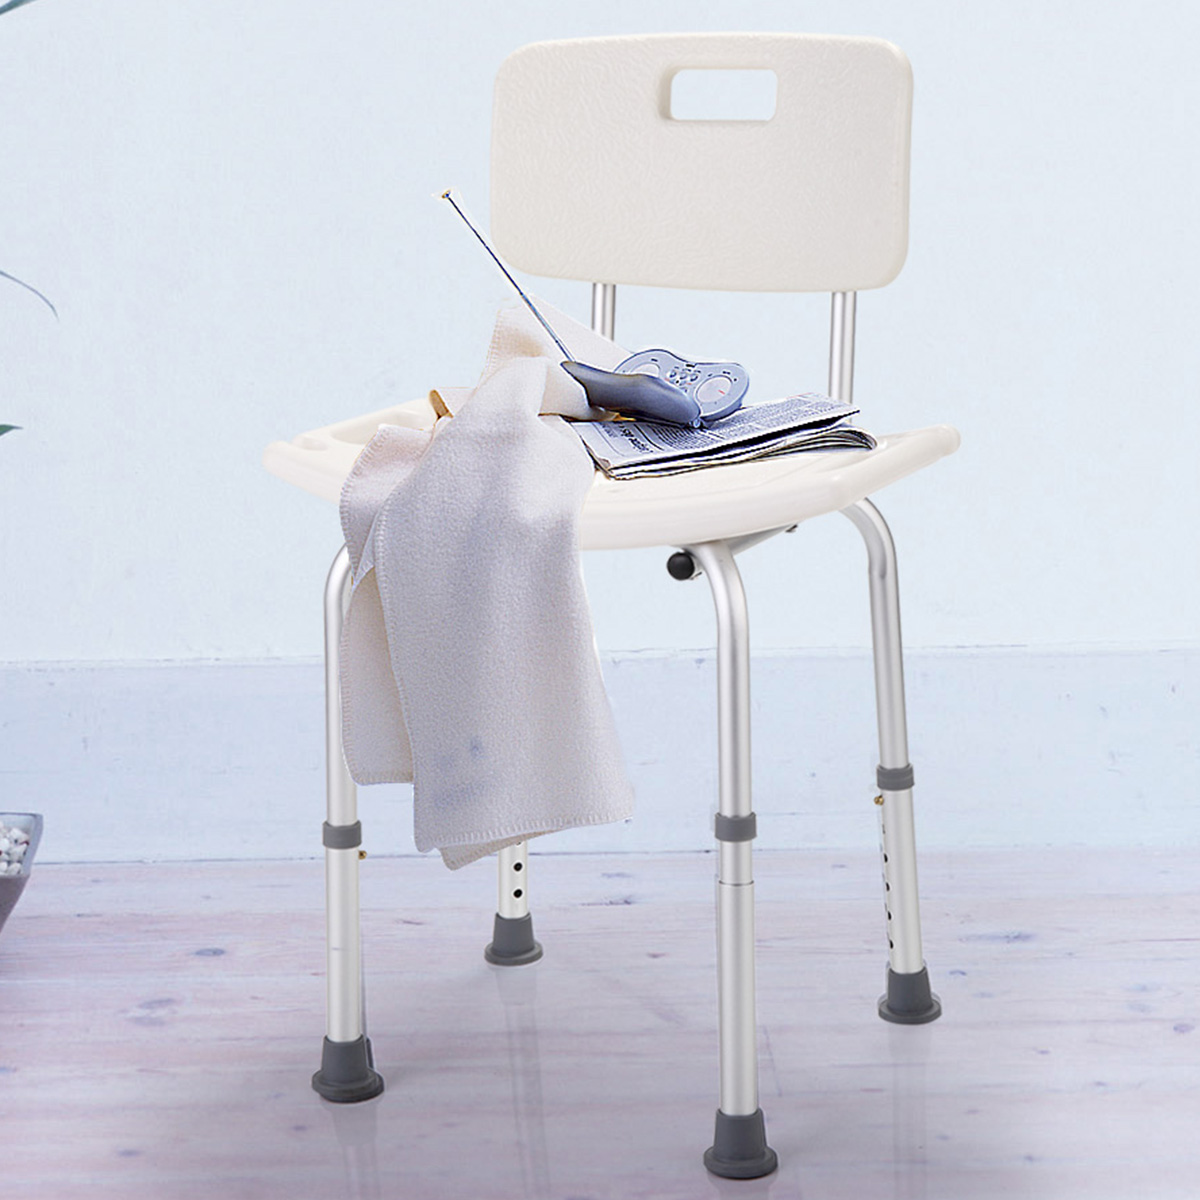 Jaxpety White Bath Shower Chair 6 Height Adjustable Medical Bench Bathtub Stool Seat Detachable Backrest